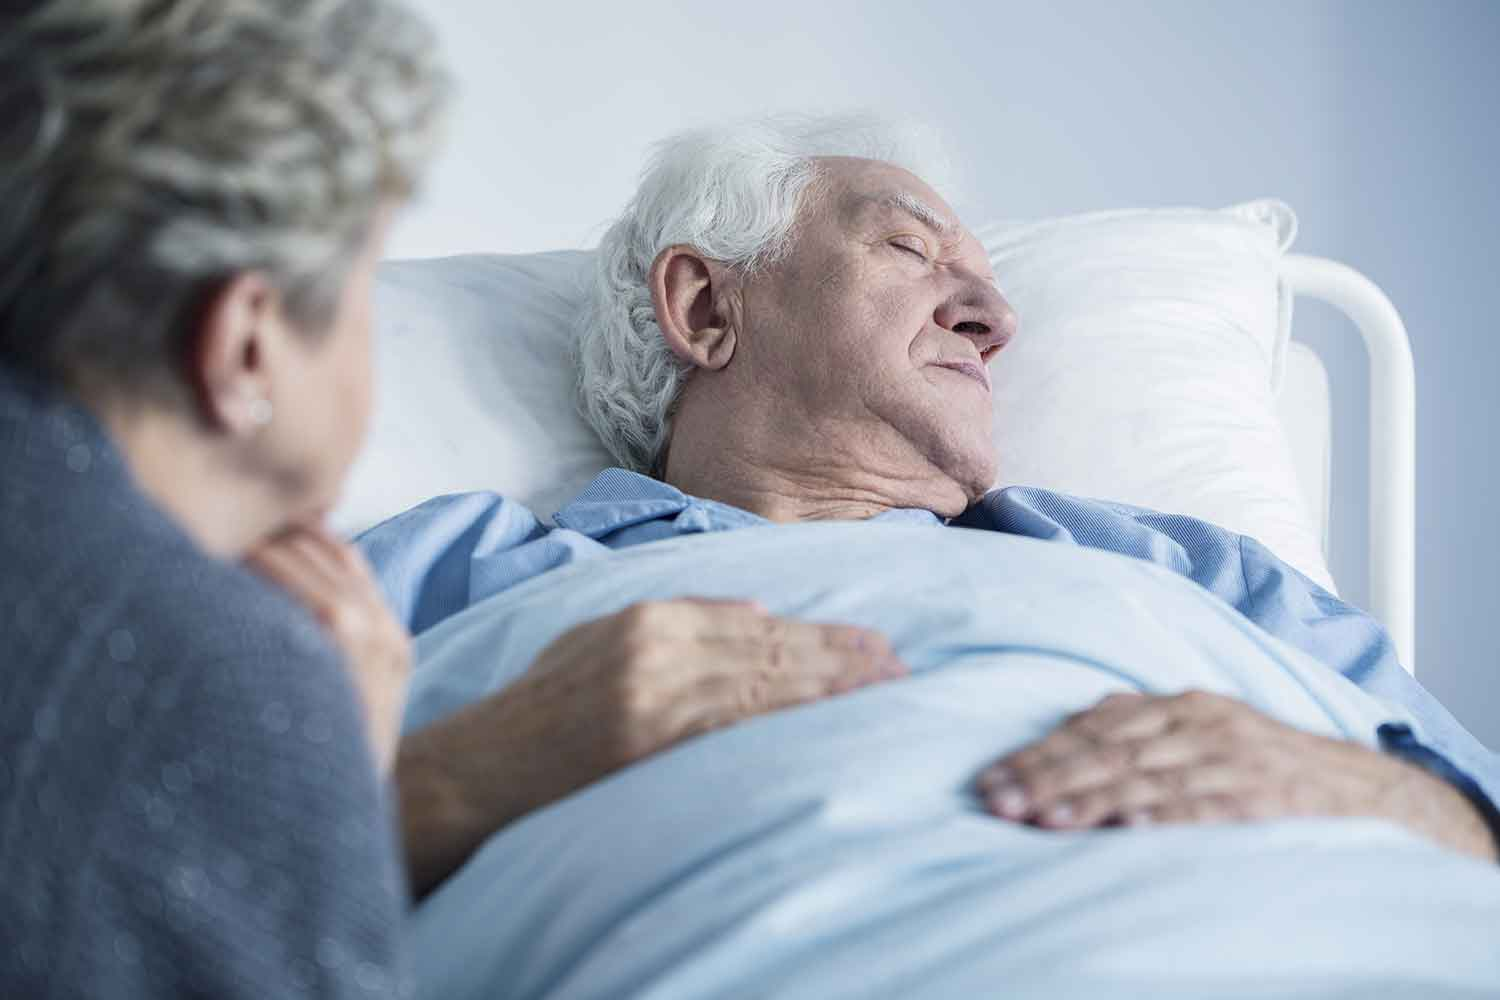 The Top 5 Regrets People Make On Their Deathbed - And What They Teach Us about Living